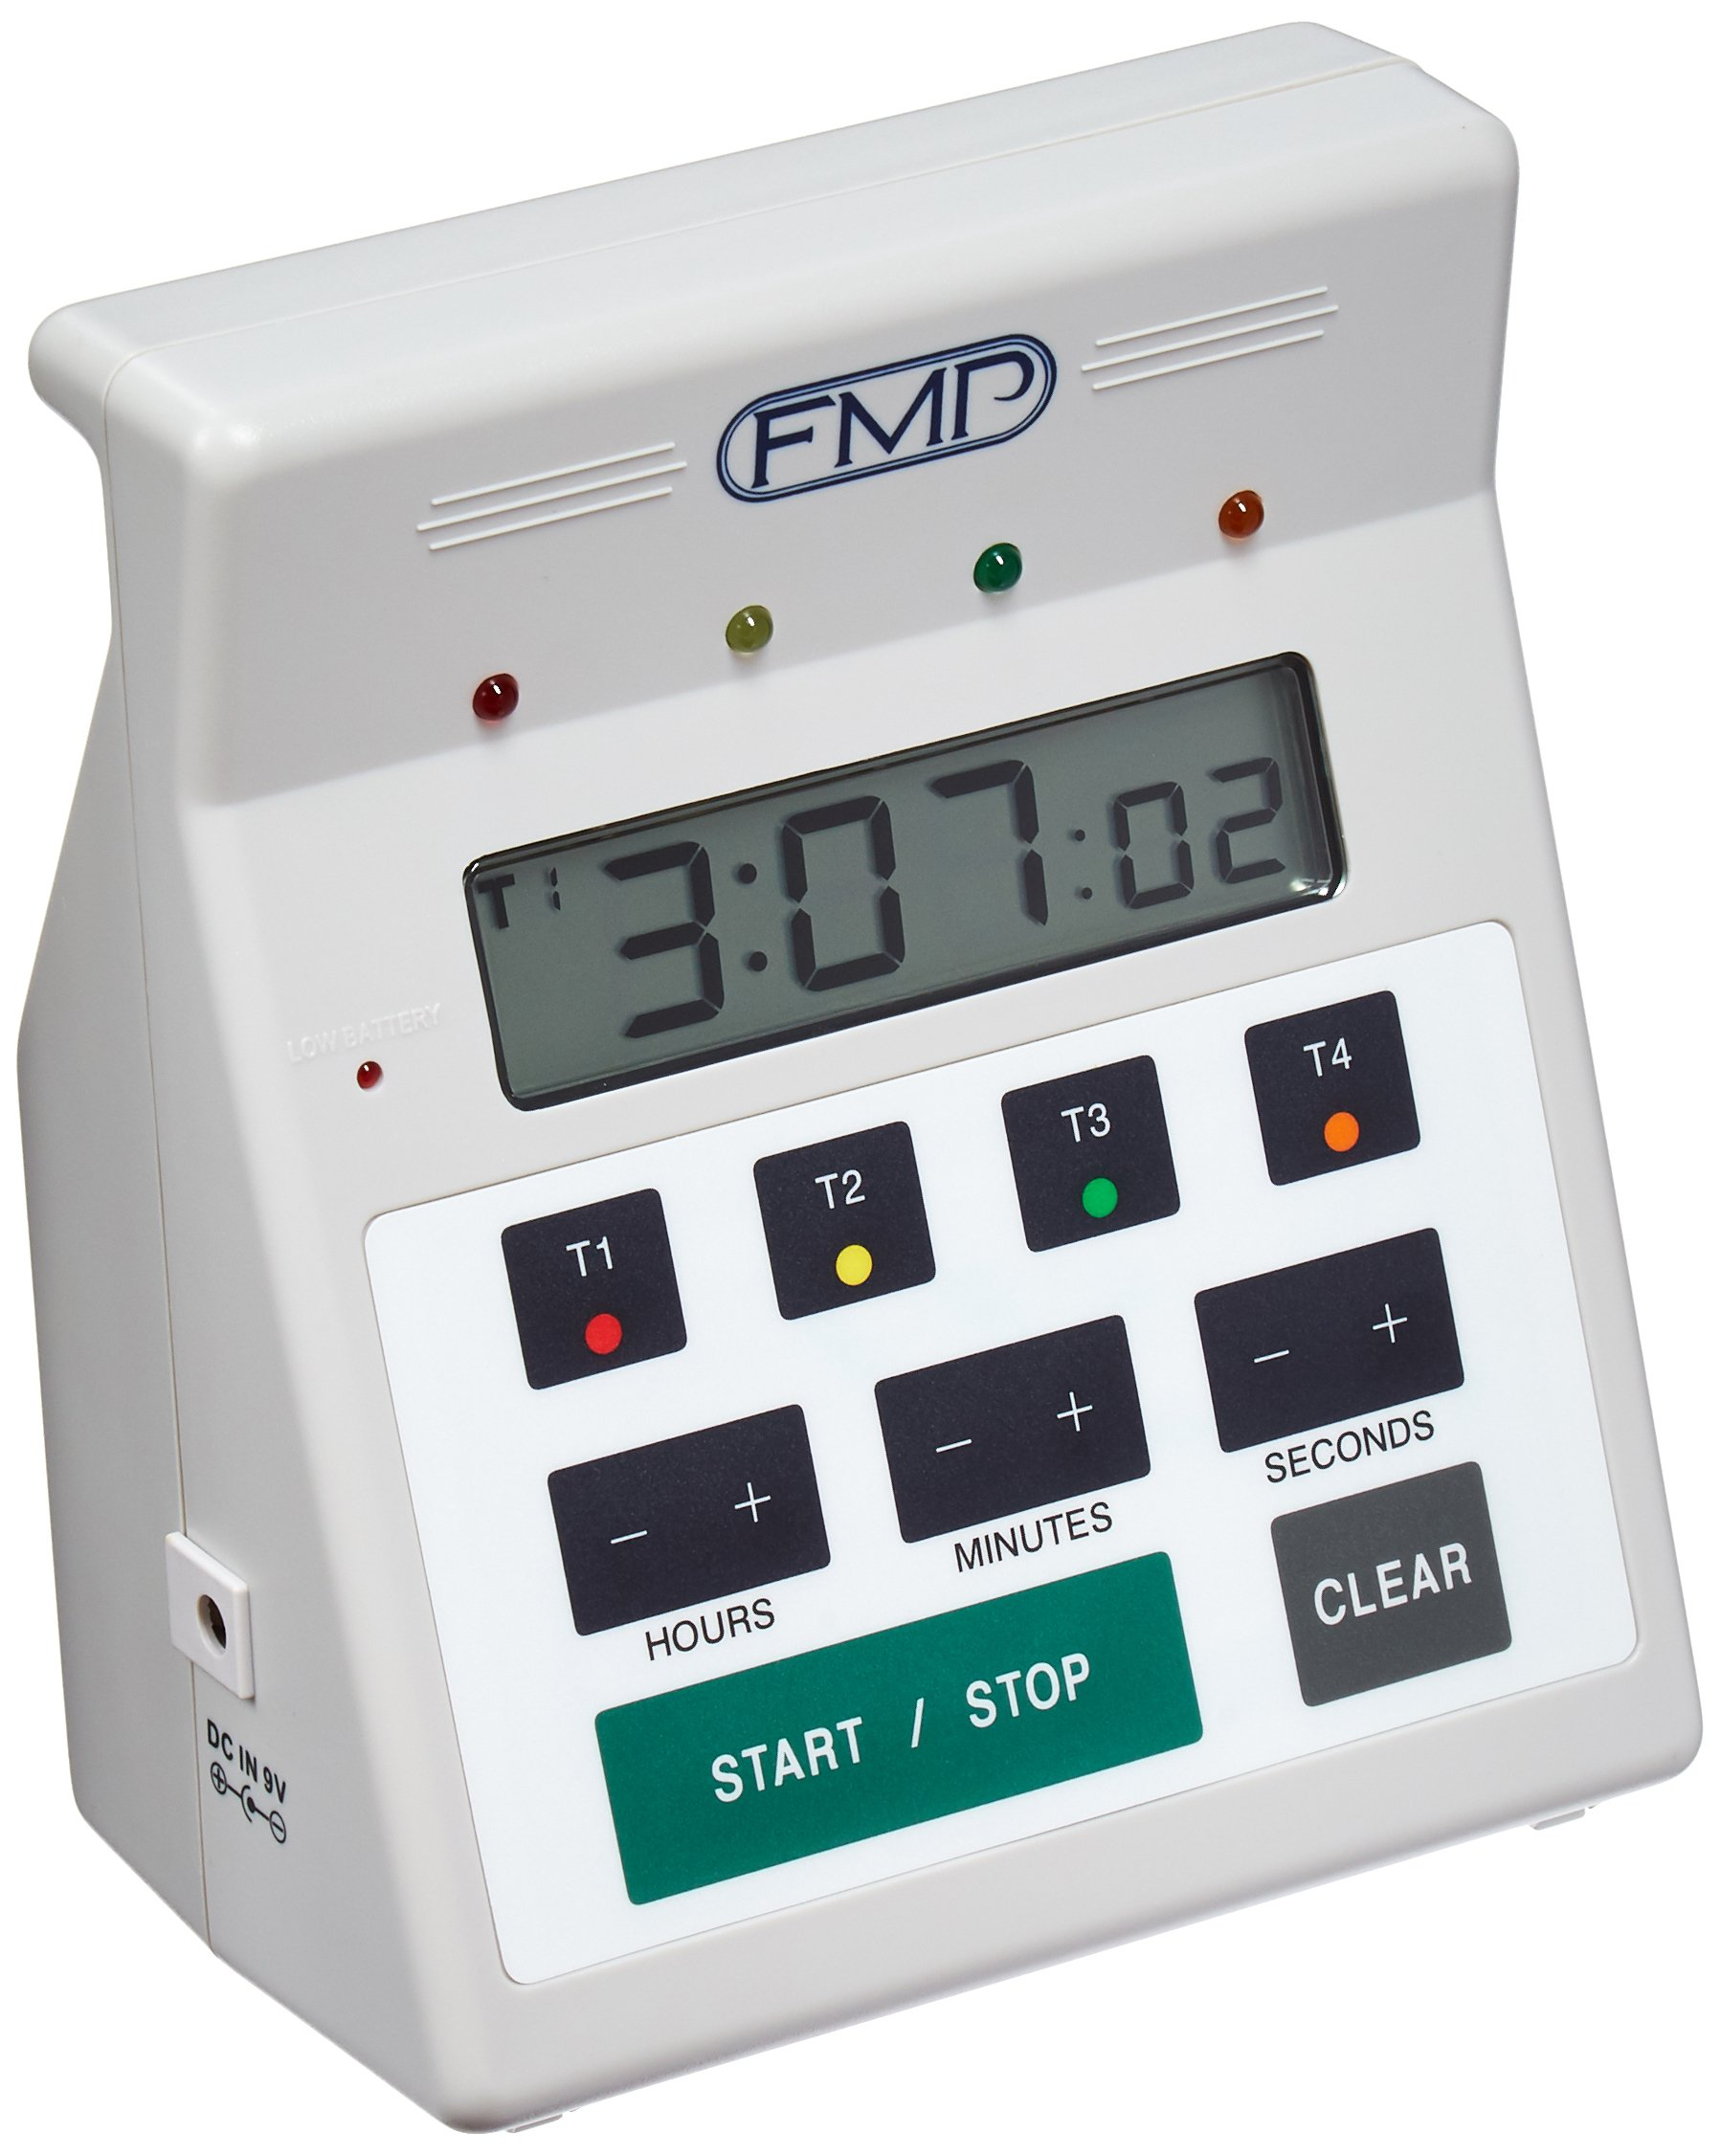 FMP 151-7500 Digital 4 -Channel Commercial Kitchen Countdown Timer, Water Resistant by FMP